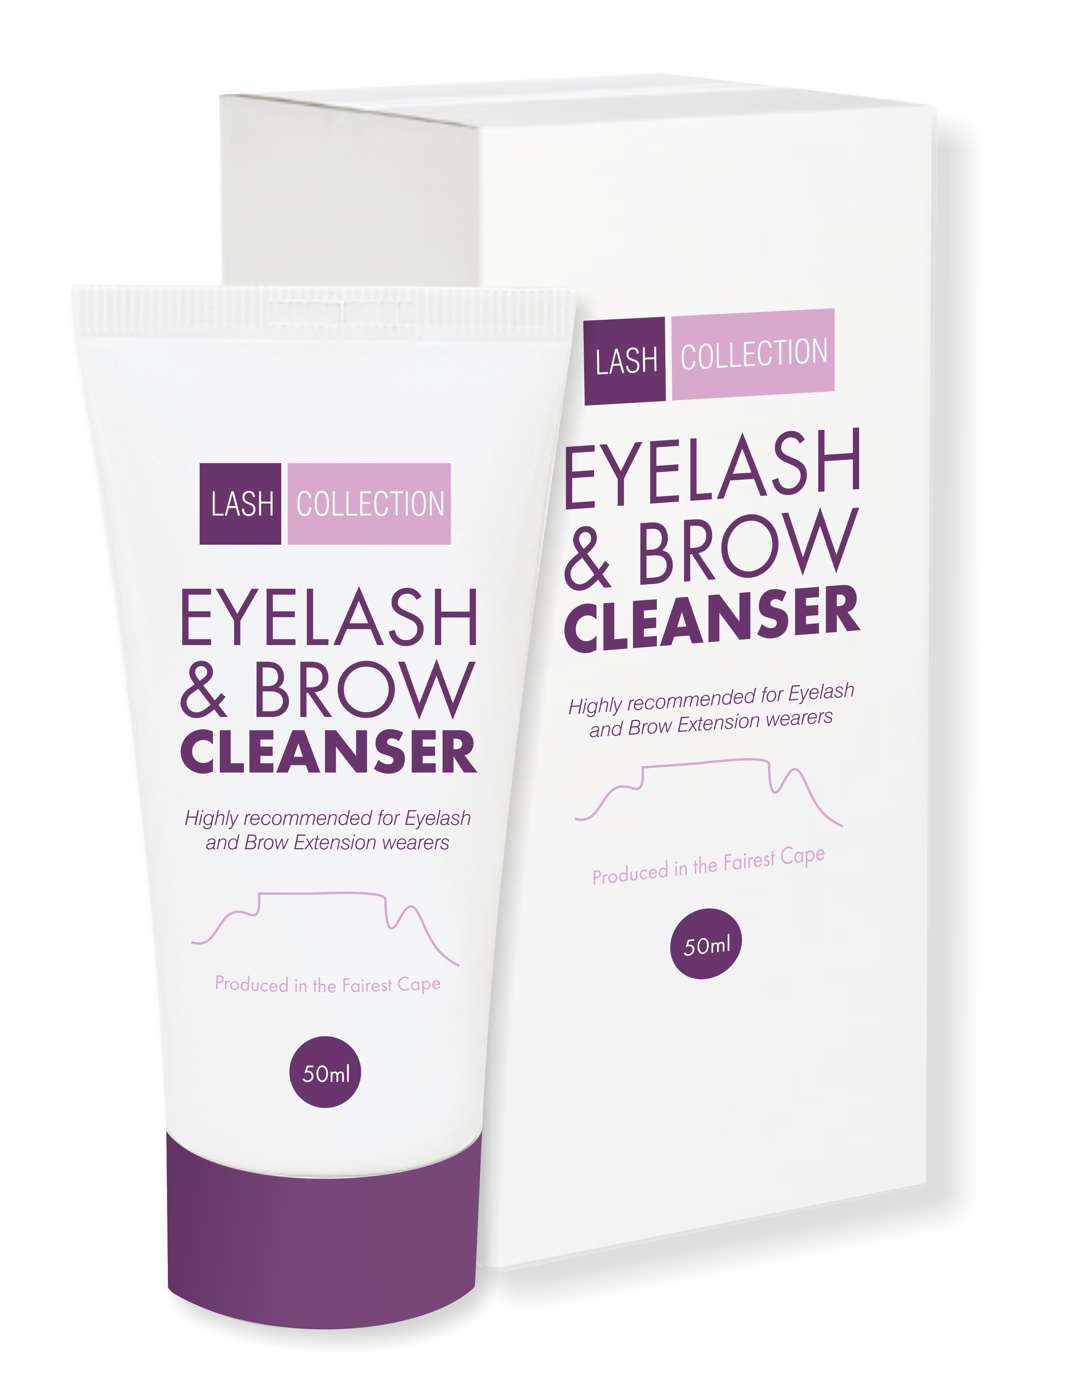 lash collection cleanser